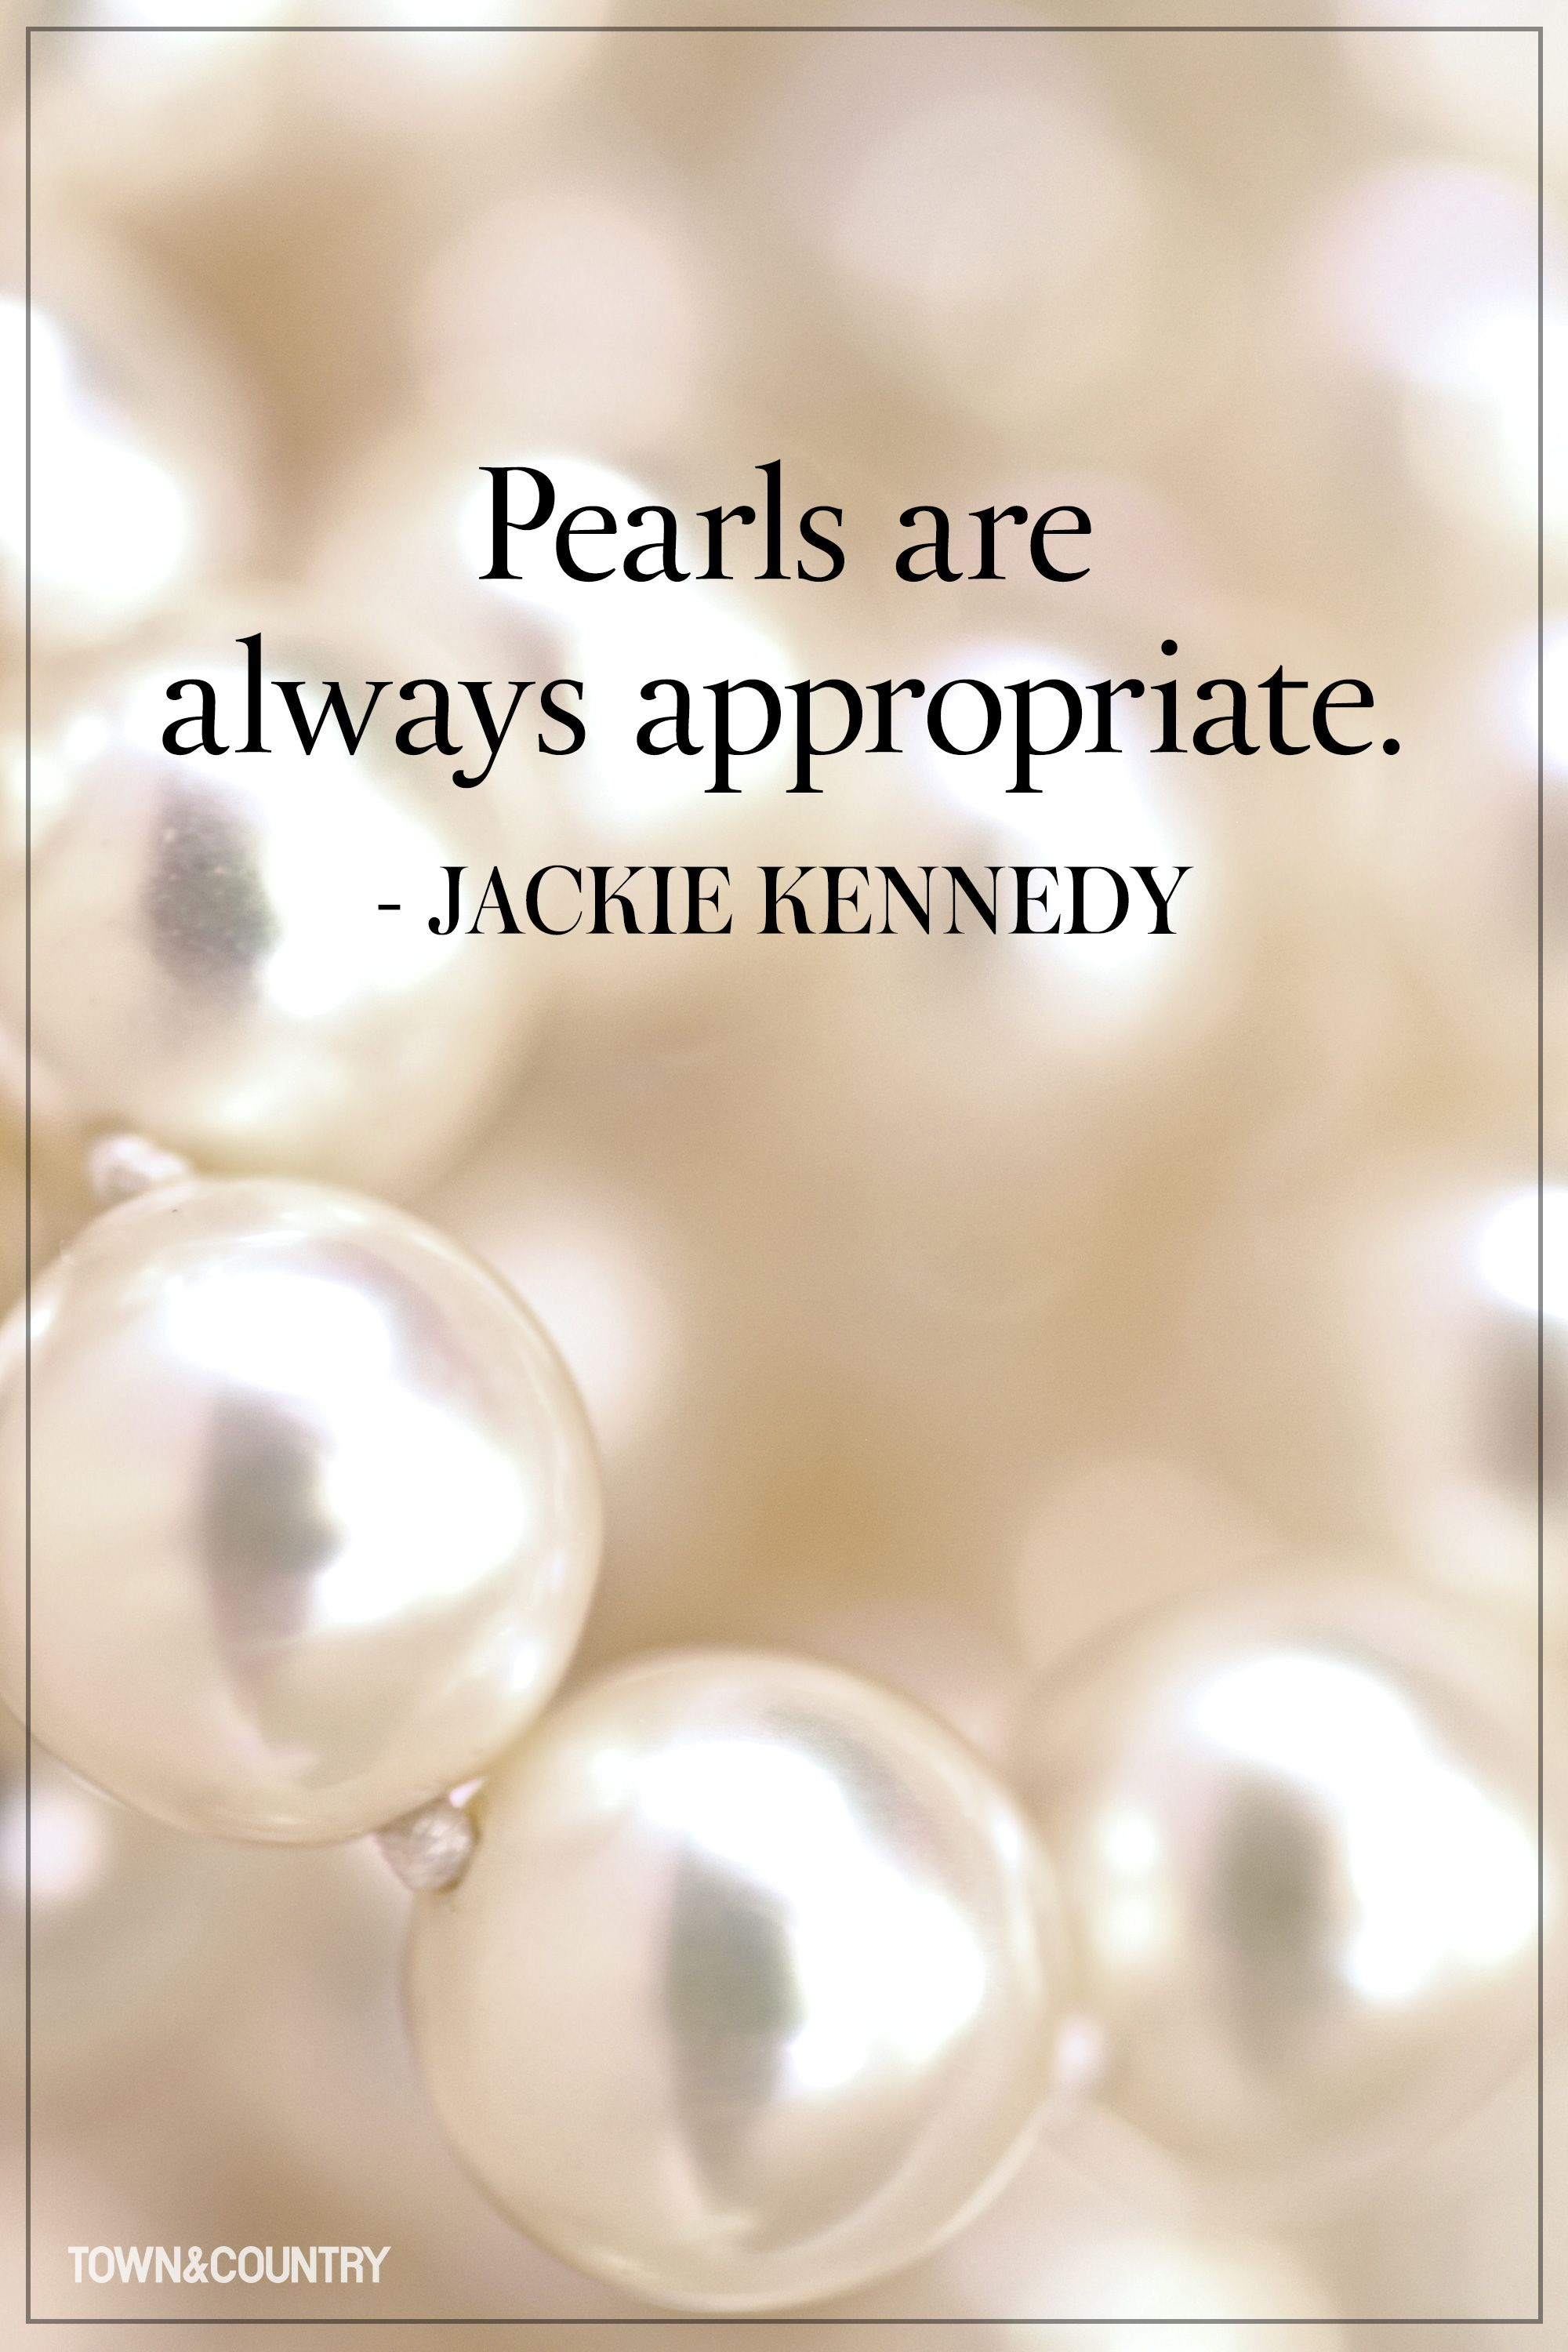 Quotes About Pearls And Friendship 10 Quotes Every Jewelry Lover Needs To Memorize  Lovers Pearls